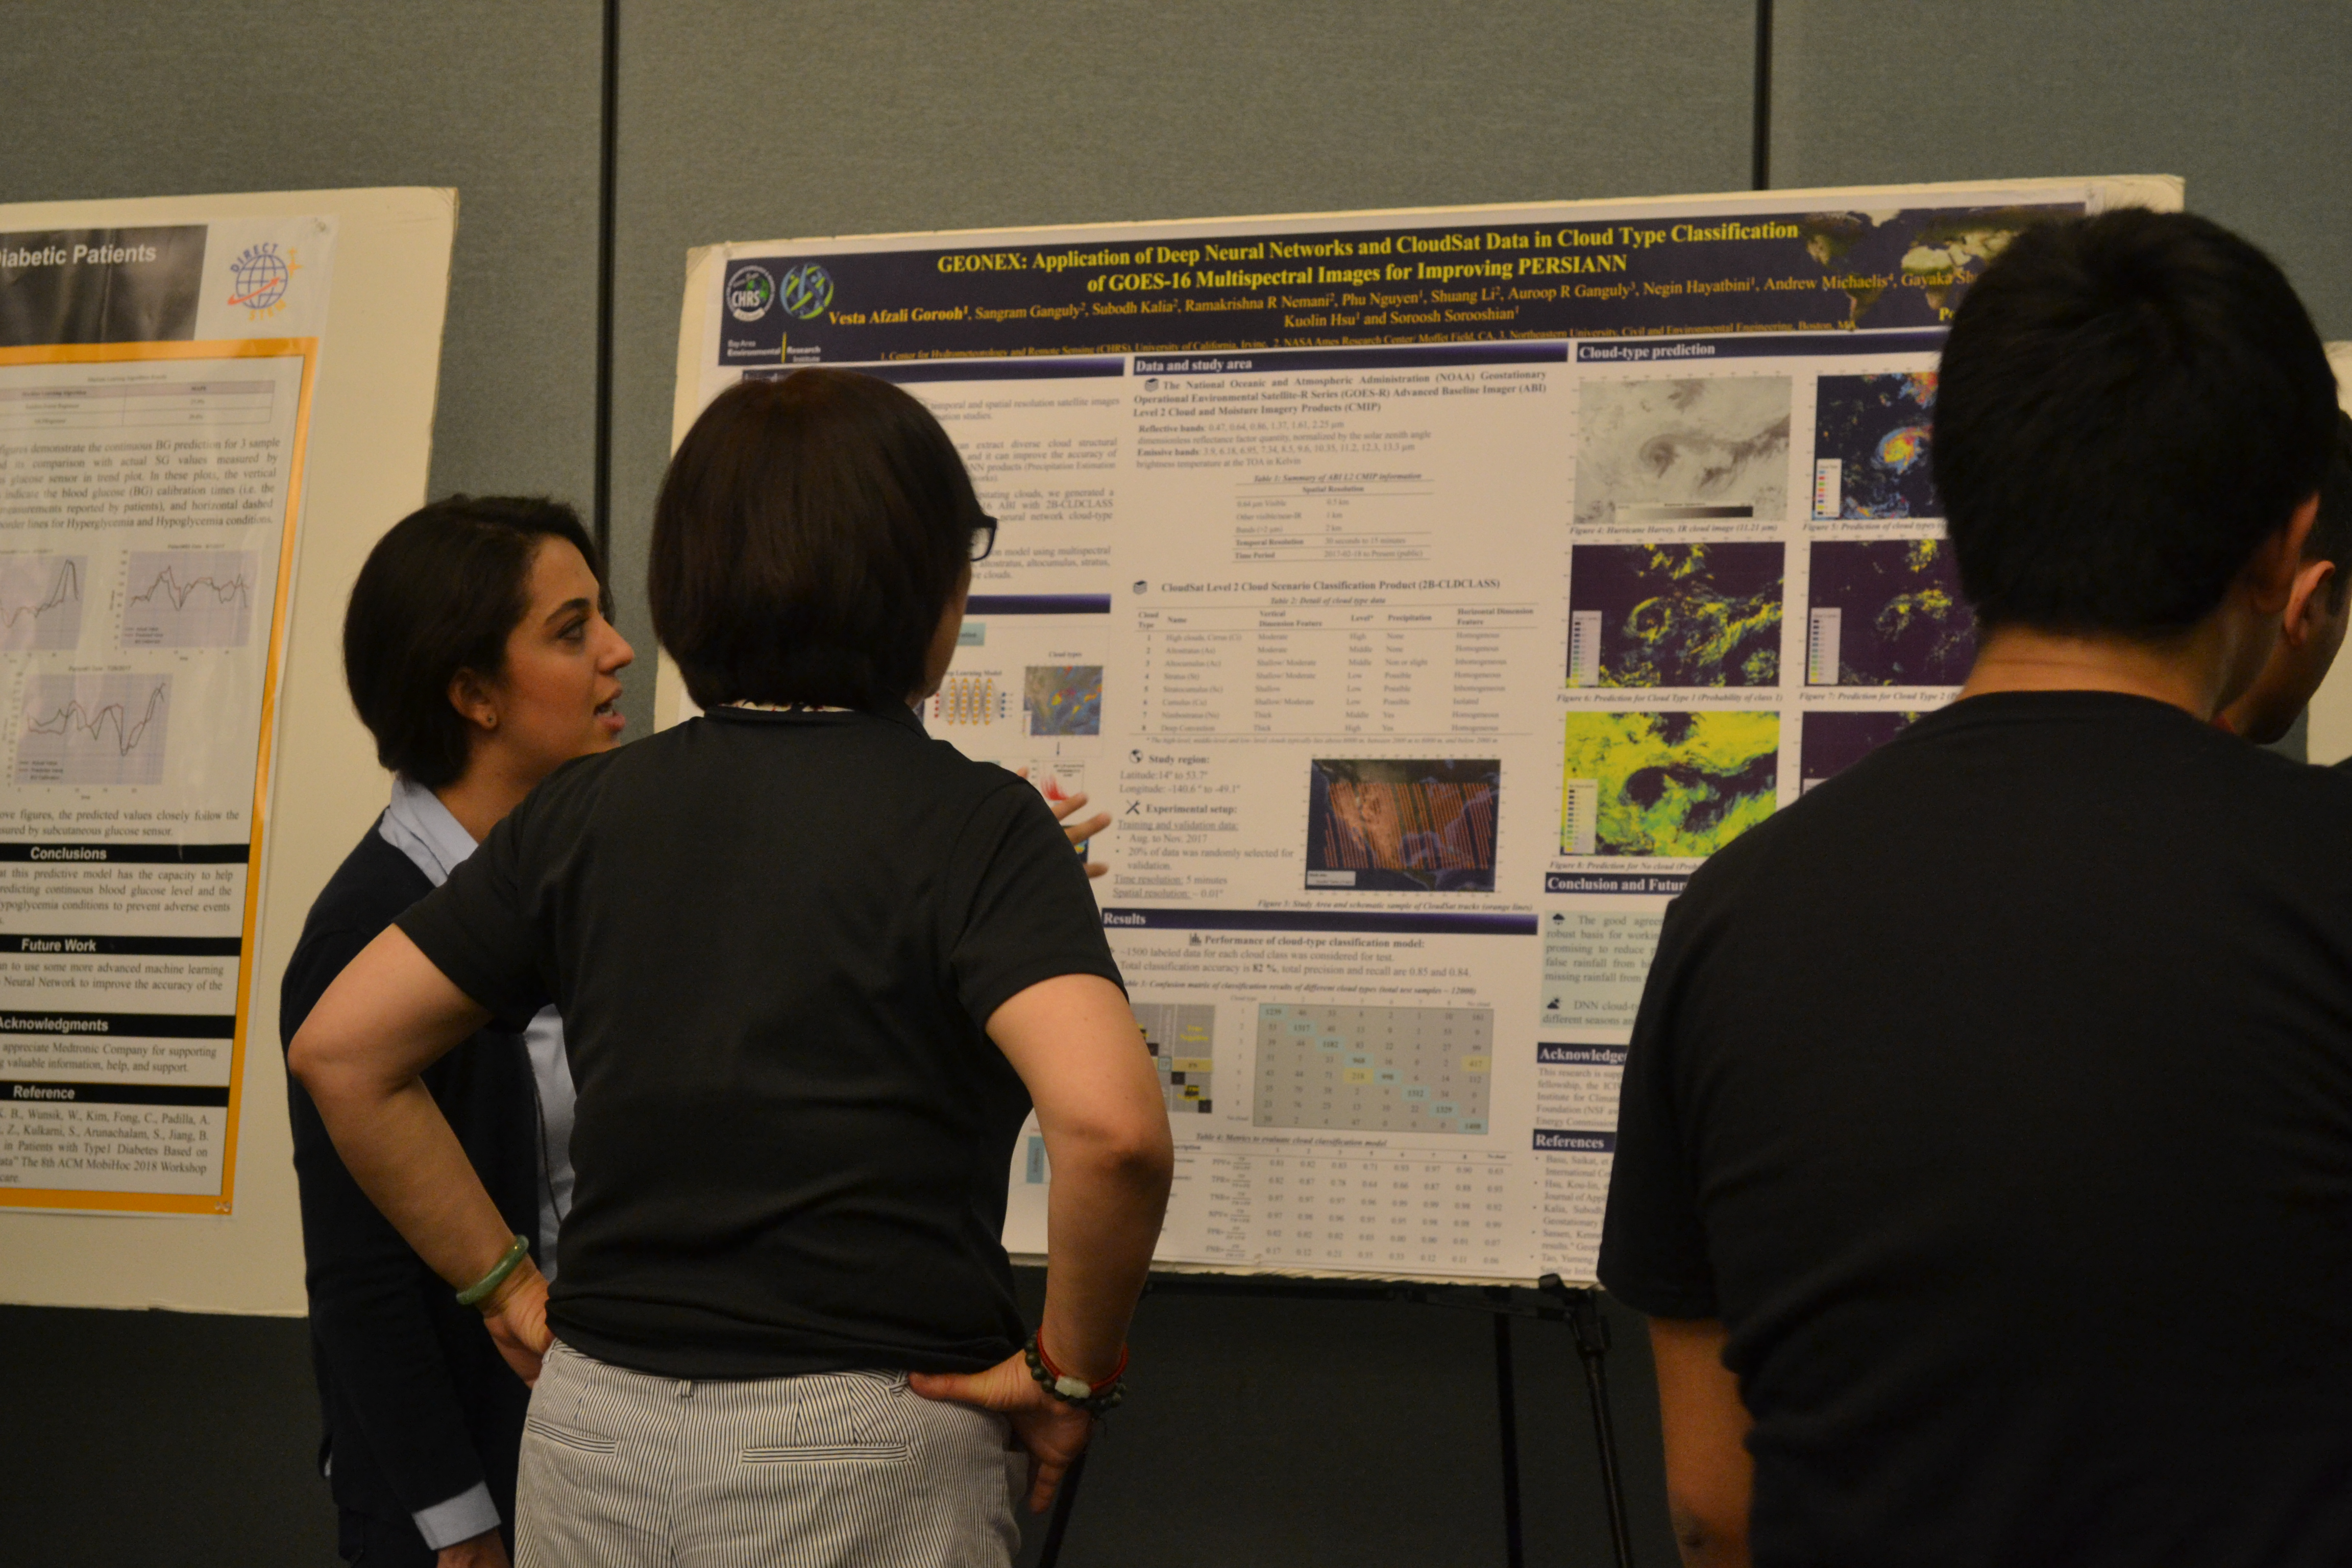 Vesta Afzali Gorooh explaining her research poster at the 4th Annual NASA DIRECT-STEM Research Symposium